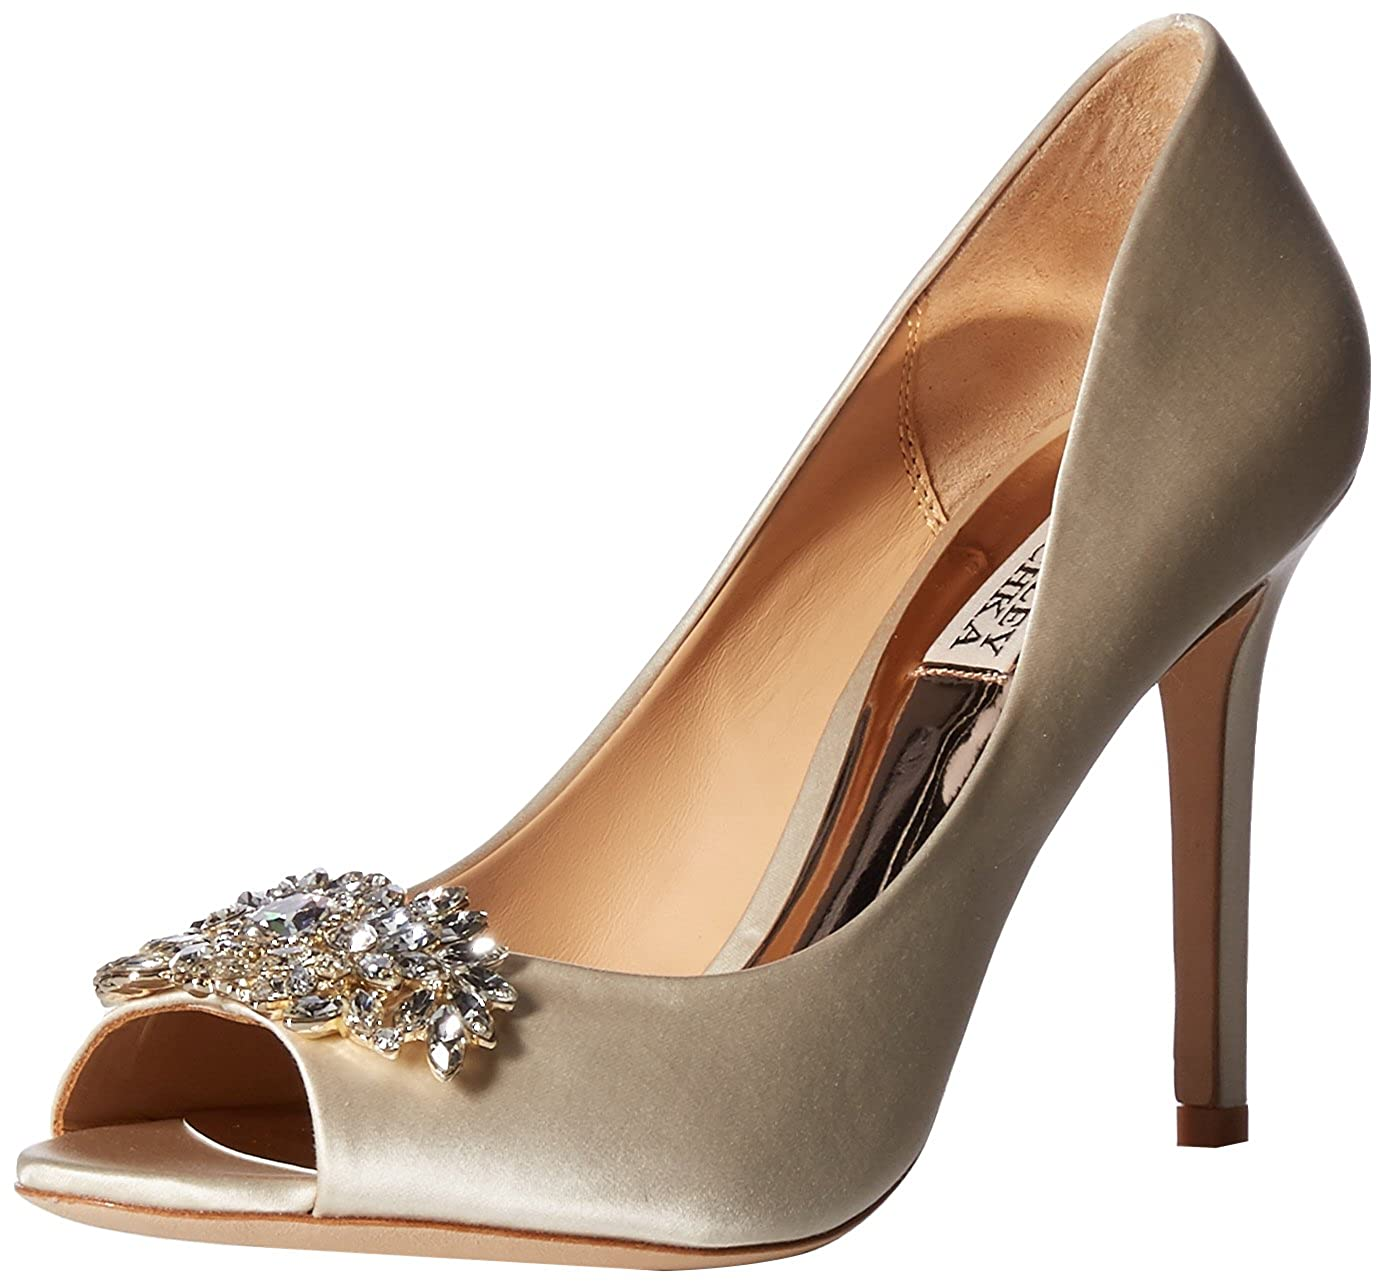 Badgley Mischka Women's Paloma Pump MP4305